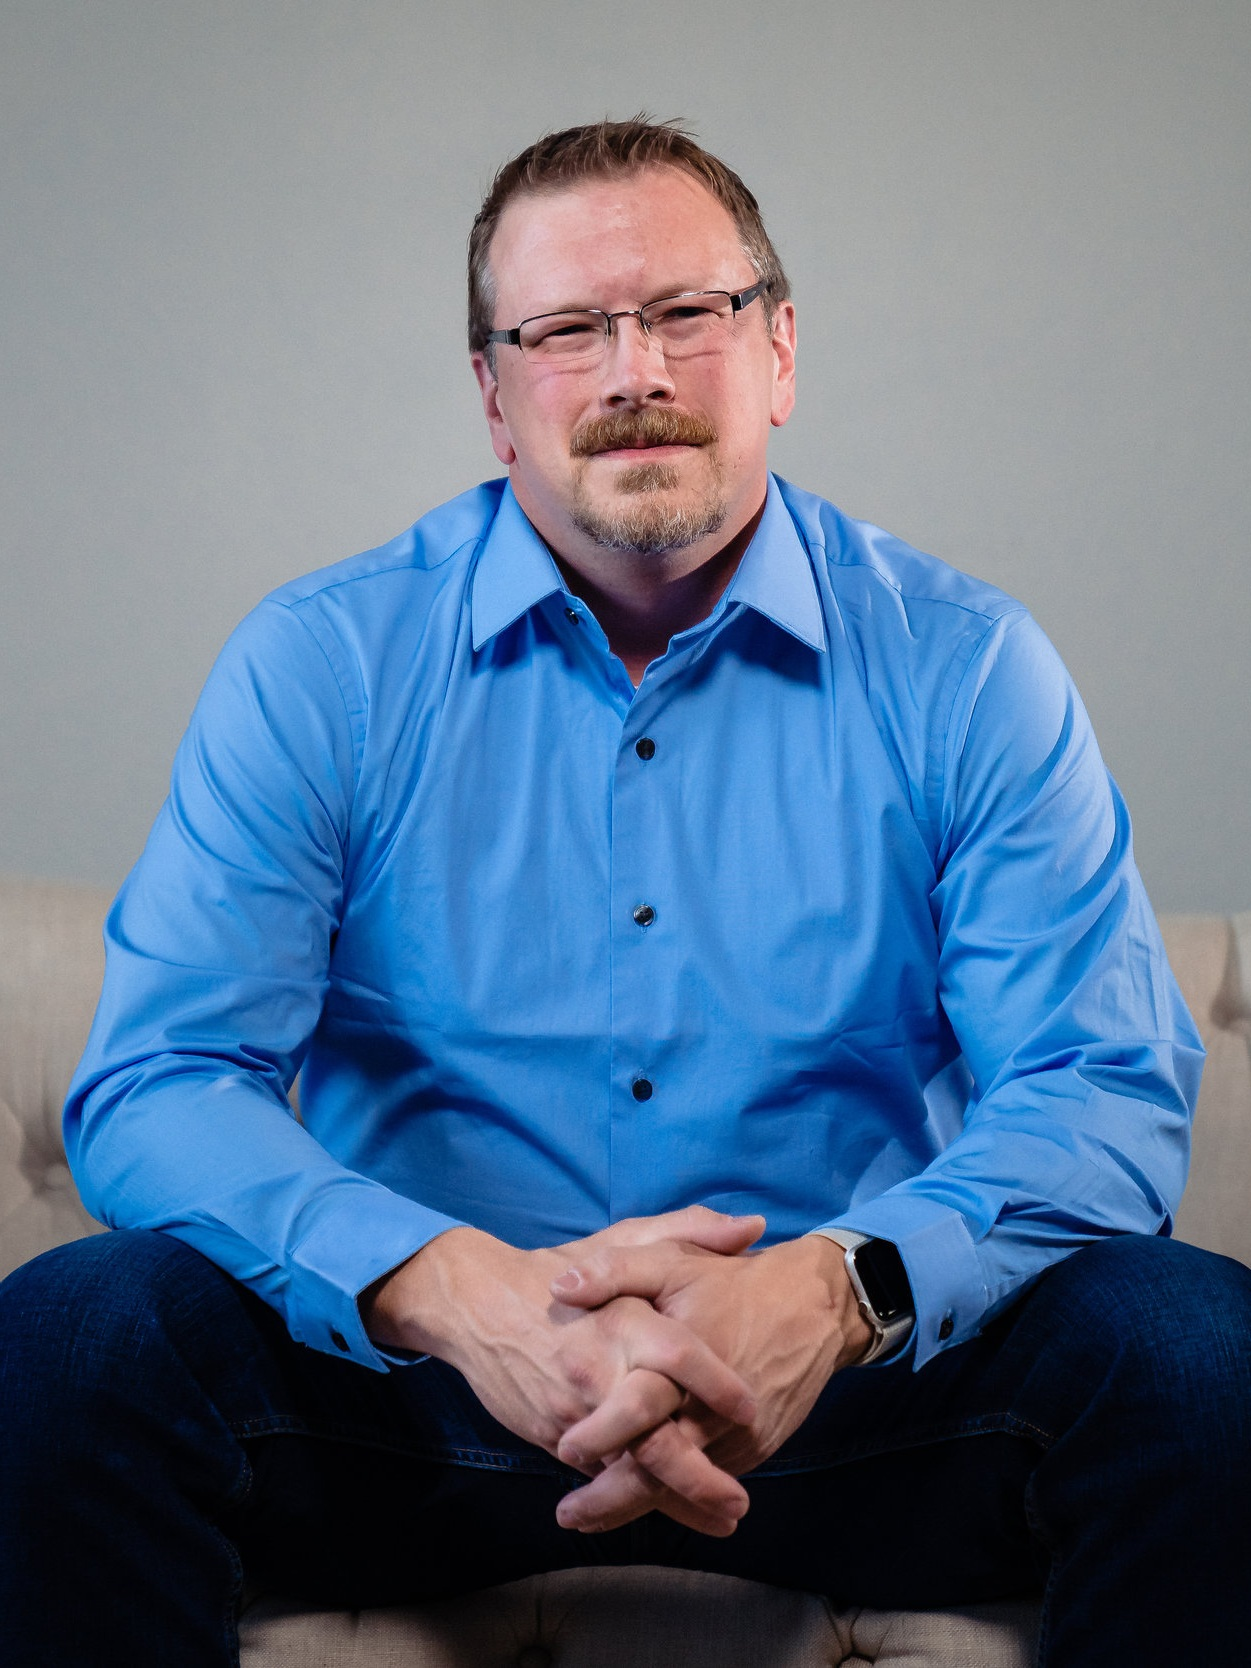 Ethan L. Bratt, MS, LMFT, CST Licensed Marriage and Family Therapist Certified Sex Therapist